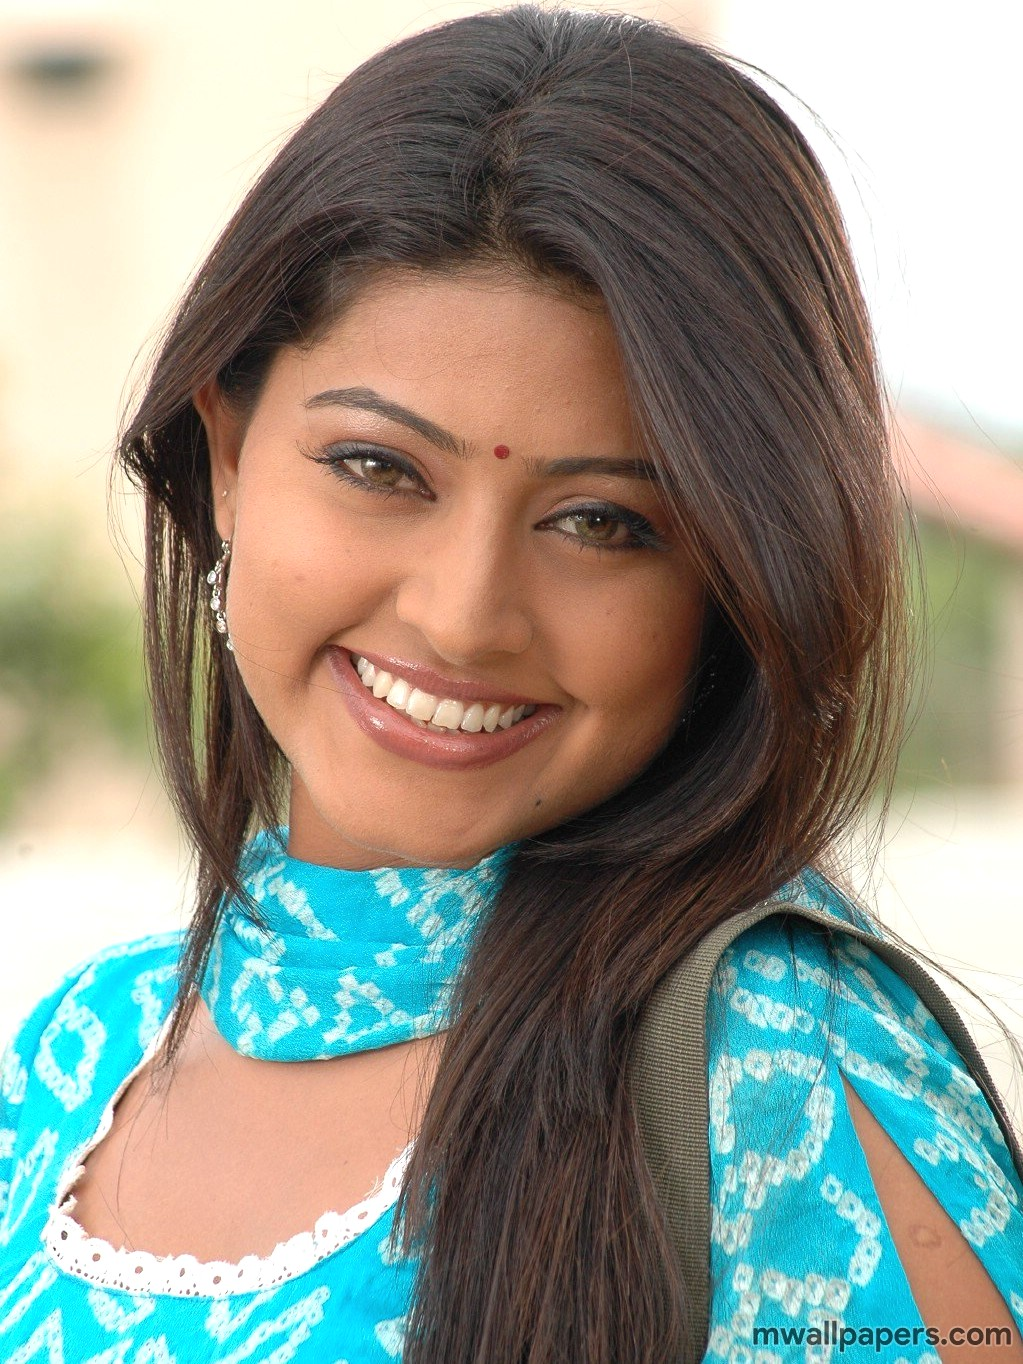 Sneha HD Images & Wallpapers (4008) - sneha, sneha prasanna, kollywood, mollywood, tollywood